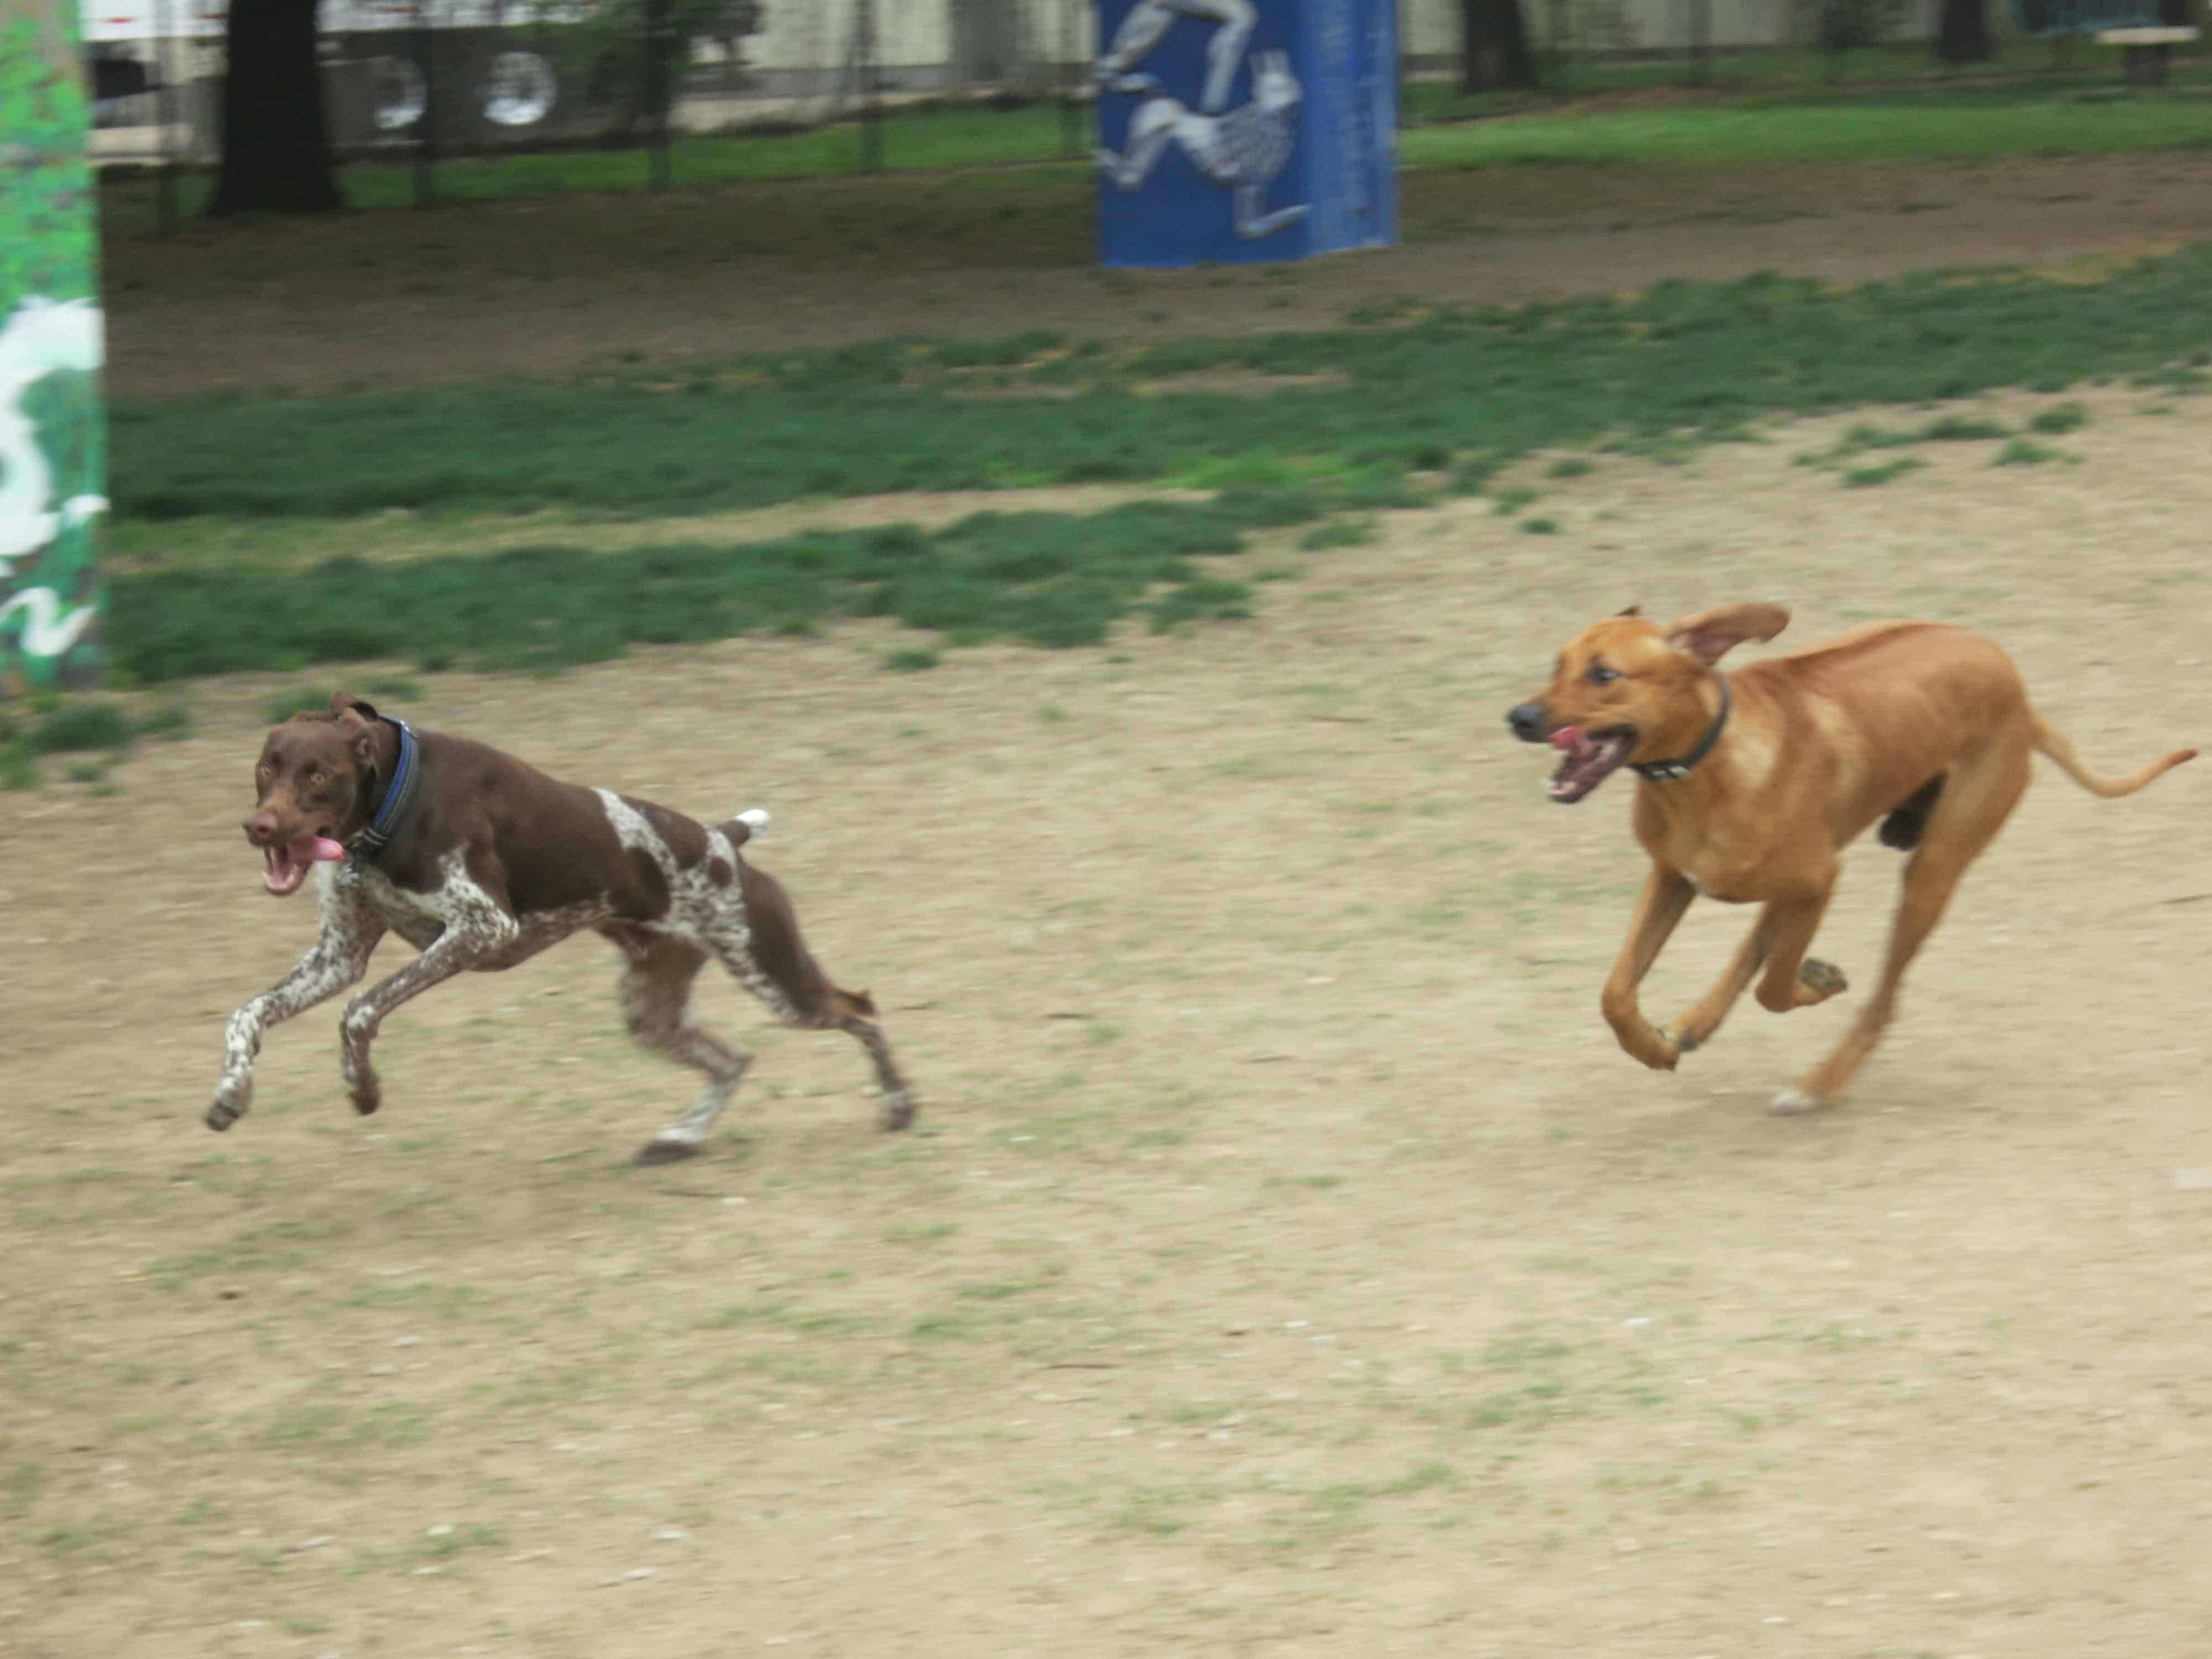 RHodesian Ridgeback, Rhodesian Rigeback photos, marking our territory, pet adventure